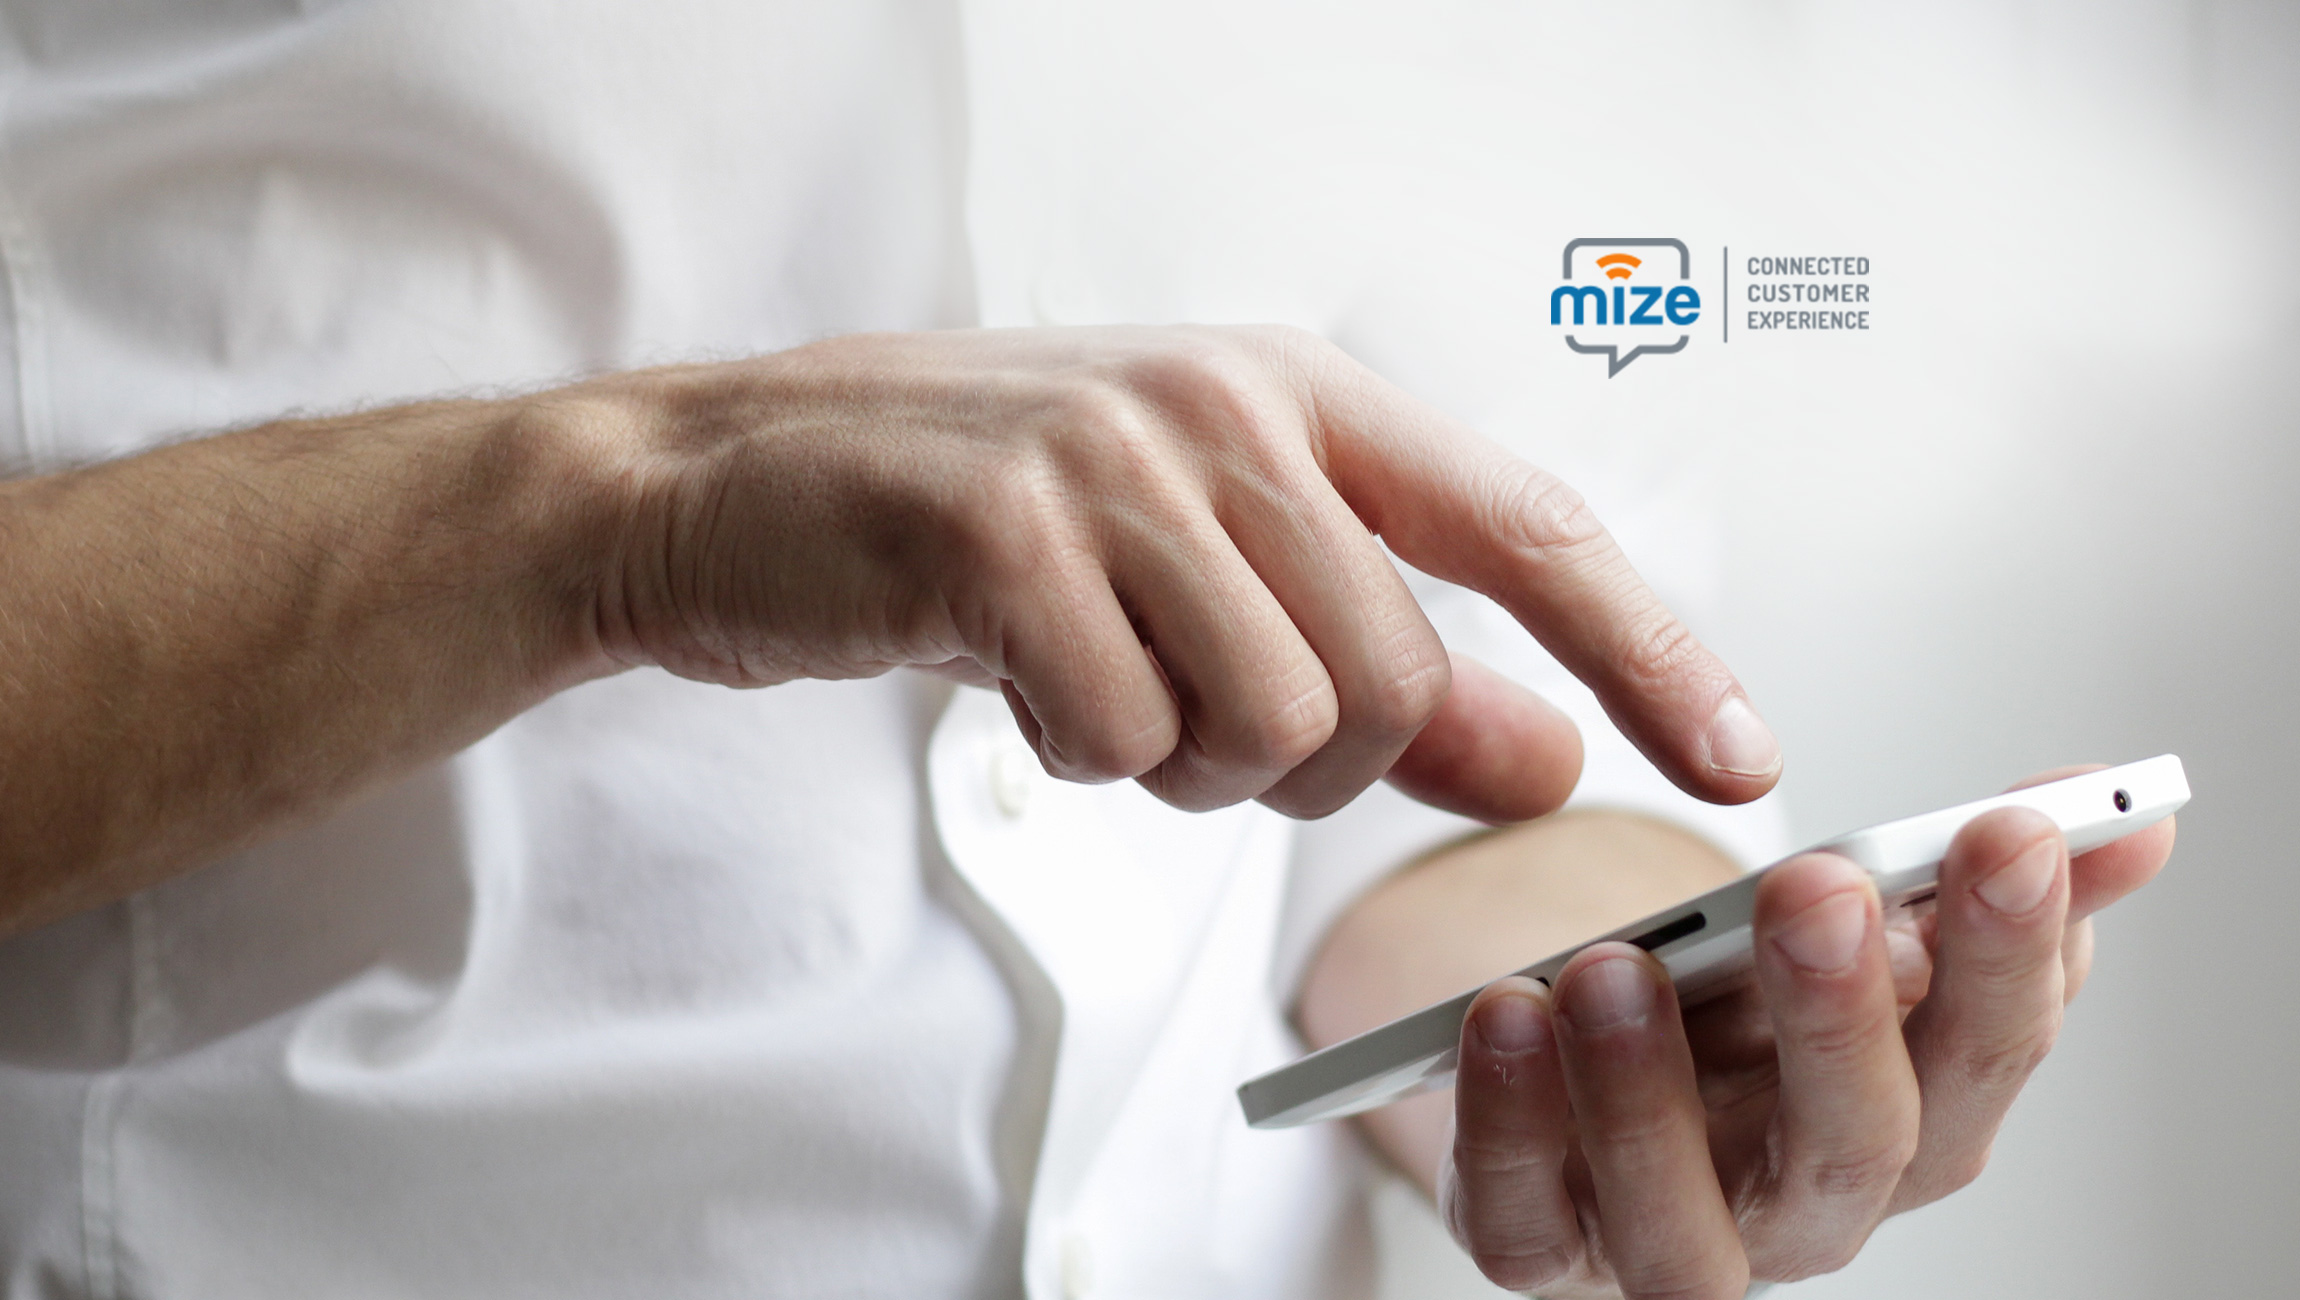 Mize Brings Merged Reality to Connected Customer Experience